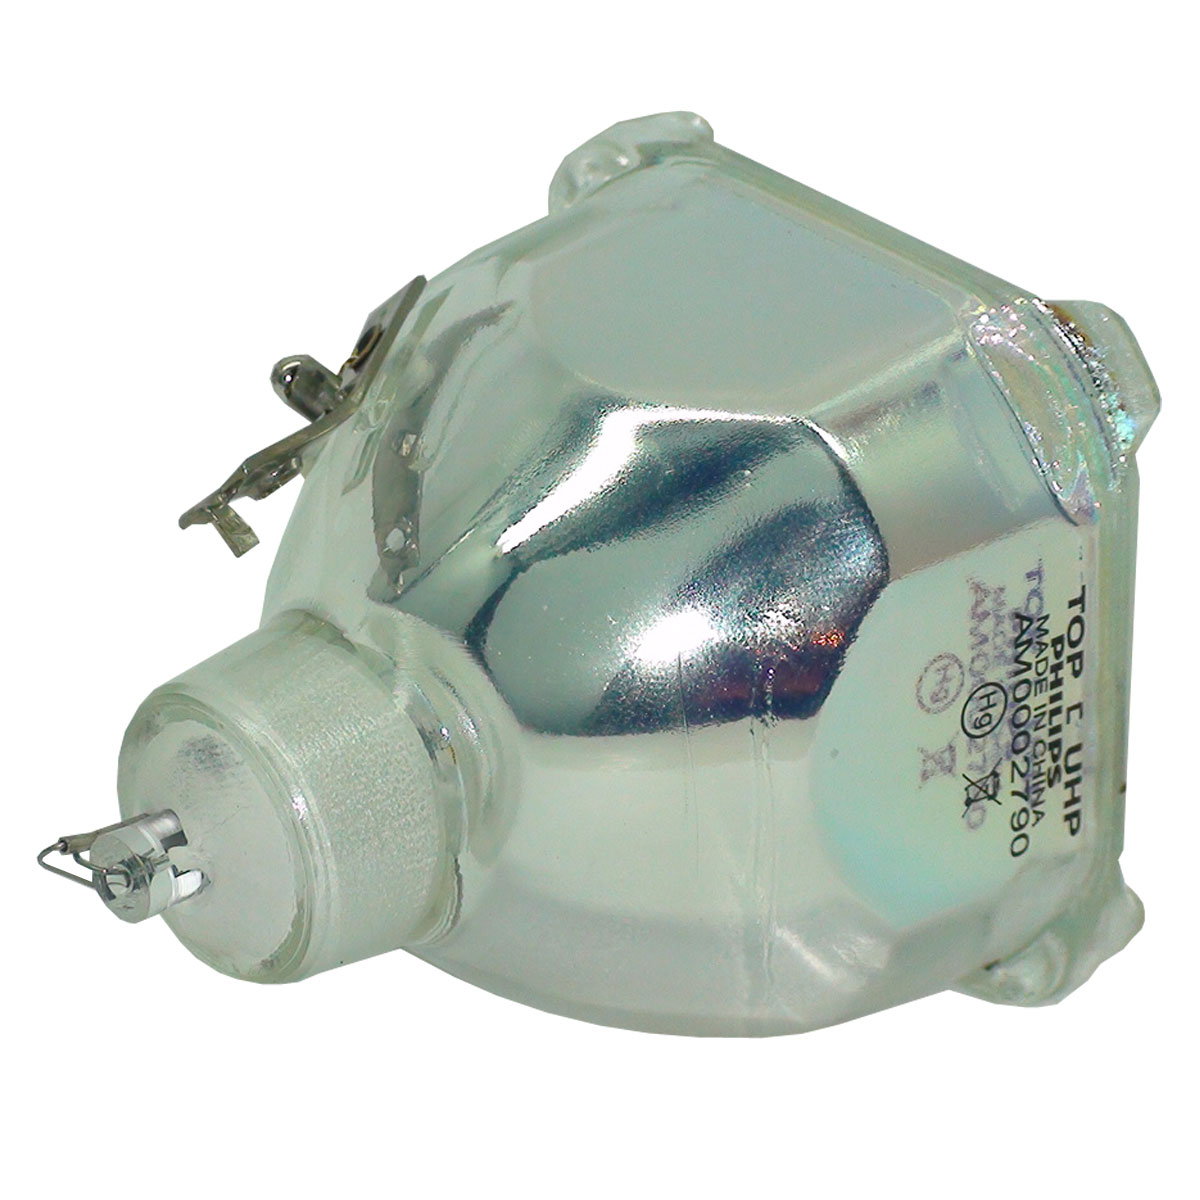 Lutema Platinum Bulb for Hitachi CP-S225WAT Projector Lamp (Original Philips Inside) - image 2 of 5